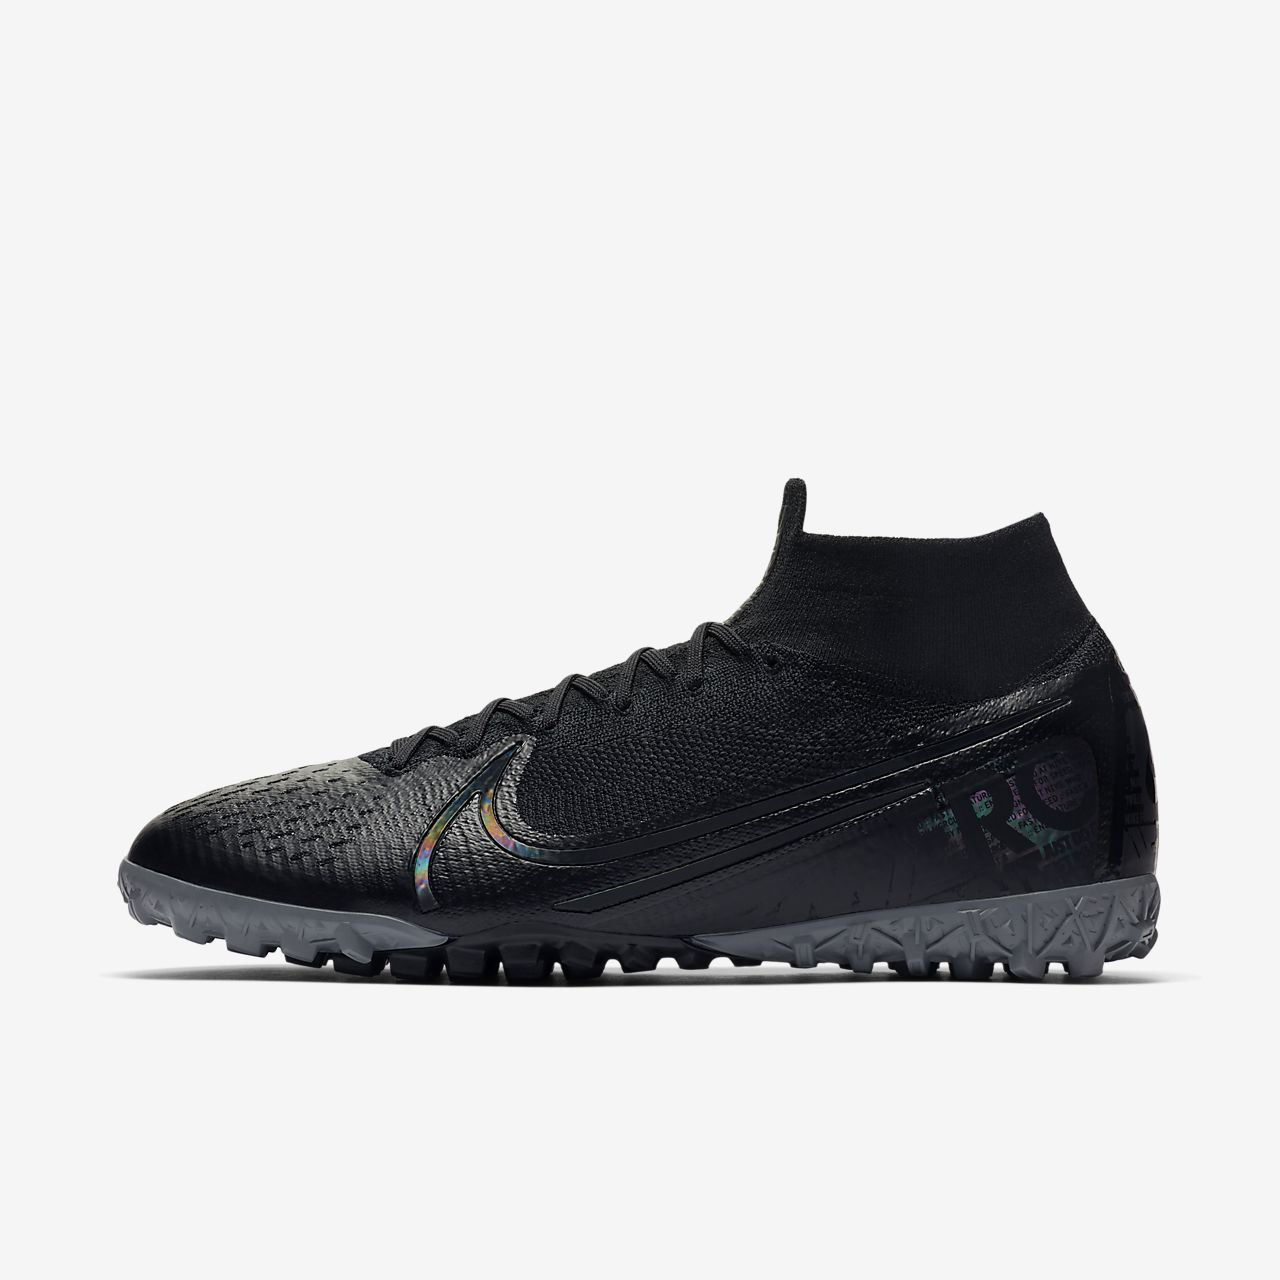 Scarpa da calcio per erba artificiale/sintetica Nike Mercurial Superfly 7 Elite TF